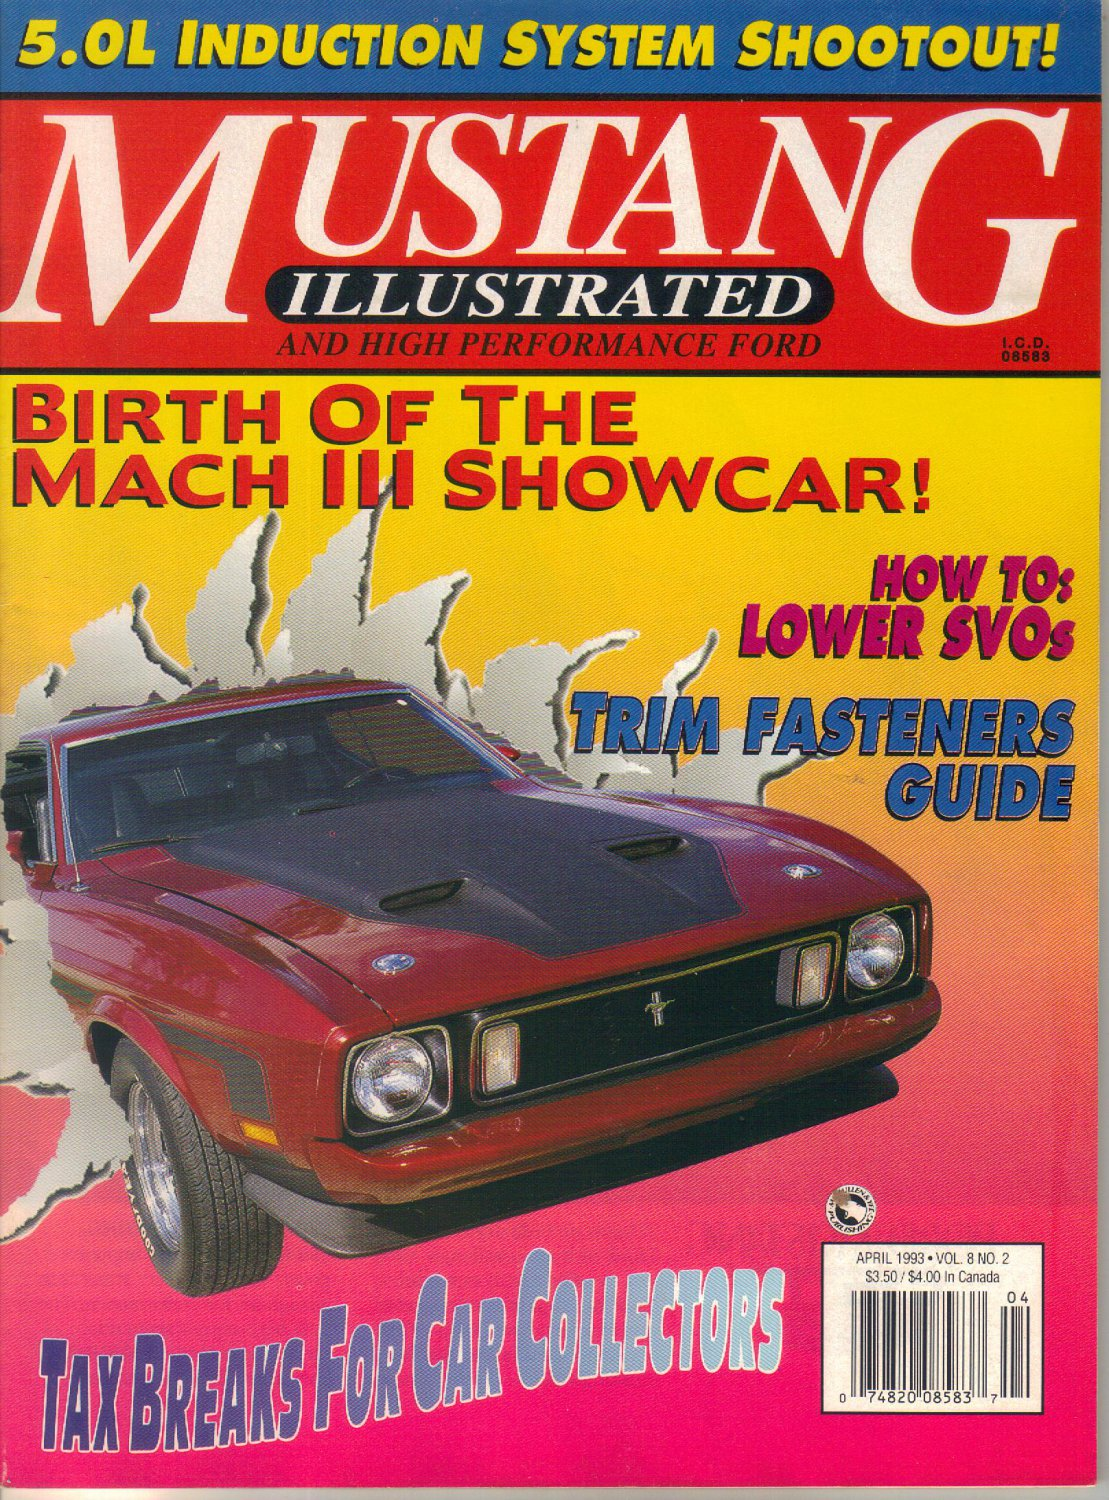 Mustang Illustrated and High Performance Ford Magazine-April 1993-Mach III Mustang show car